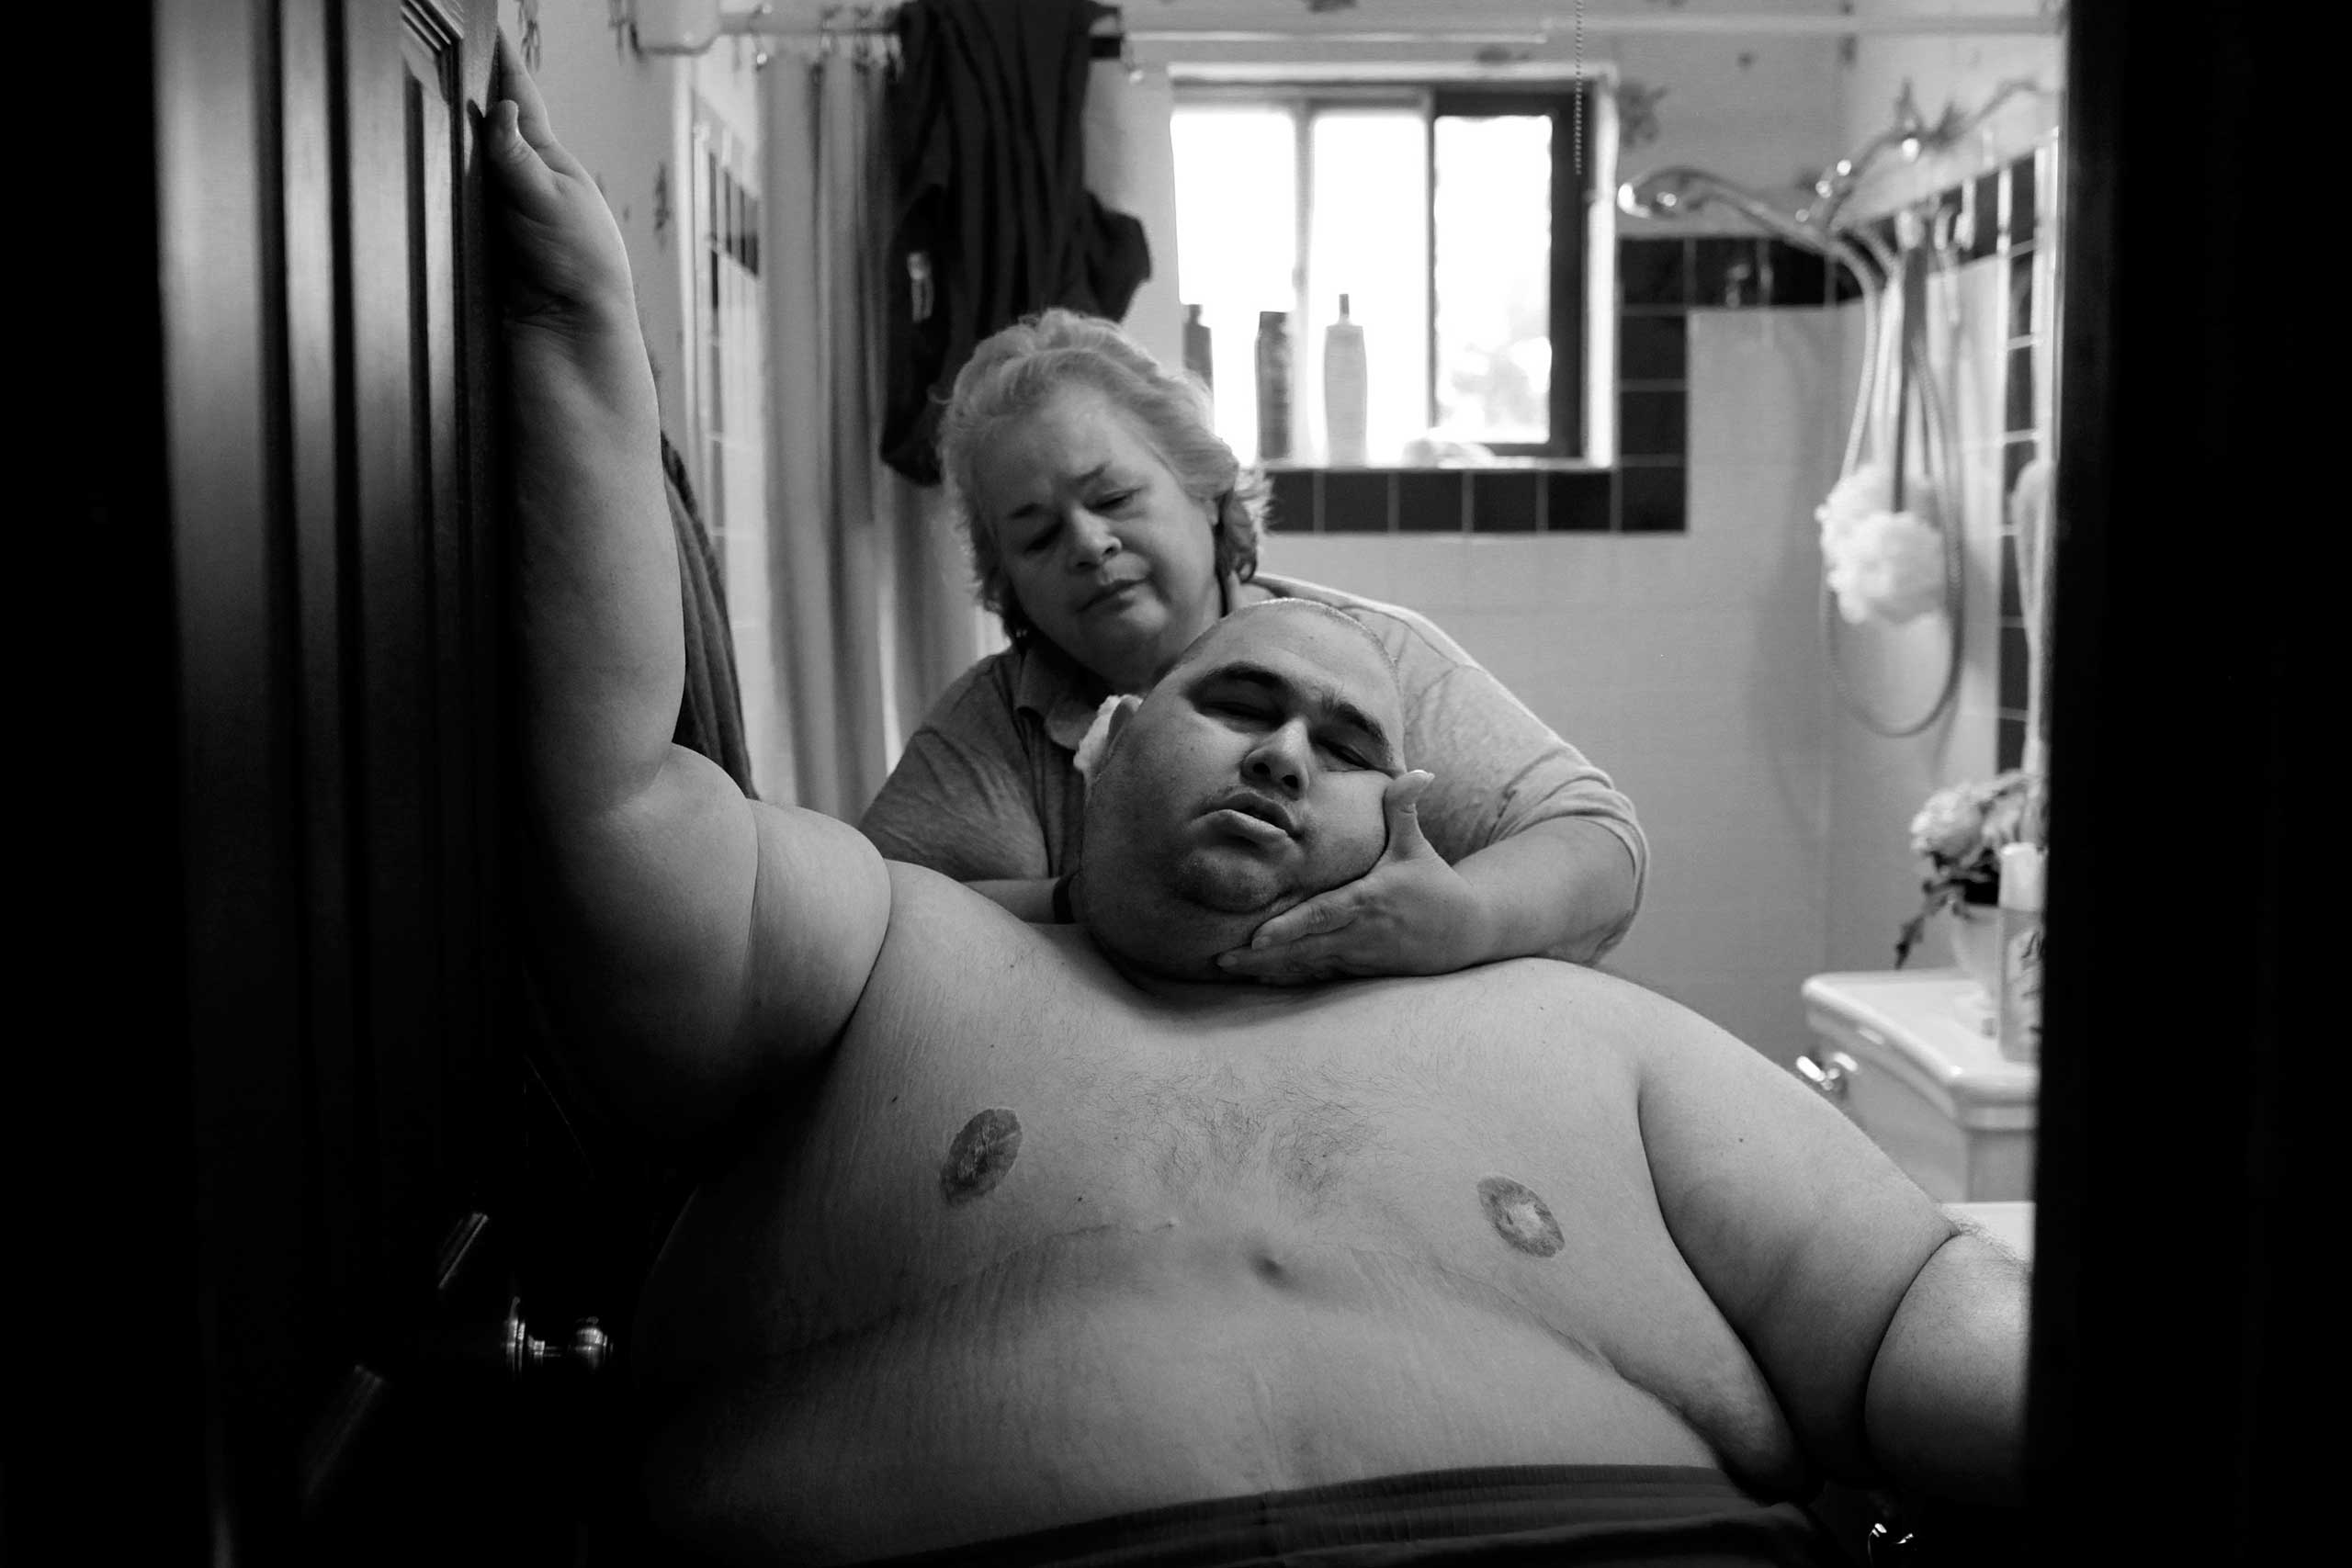 Nominated in the Contemporary Issues category. Lisa Krantz's work on obesity in America.